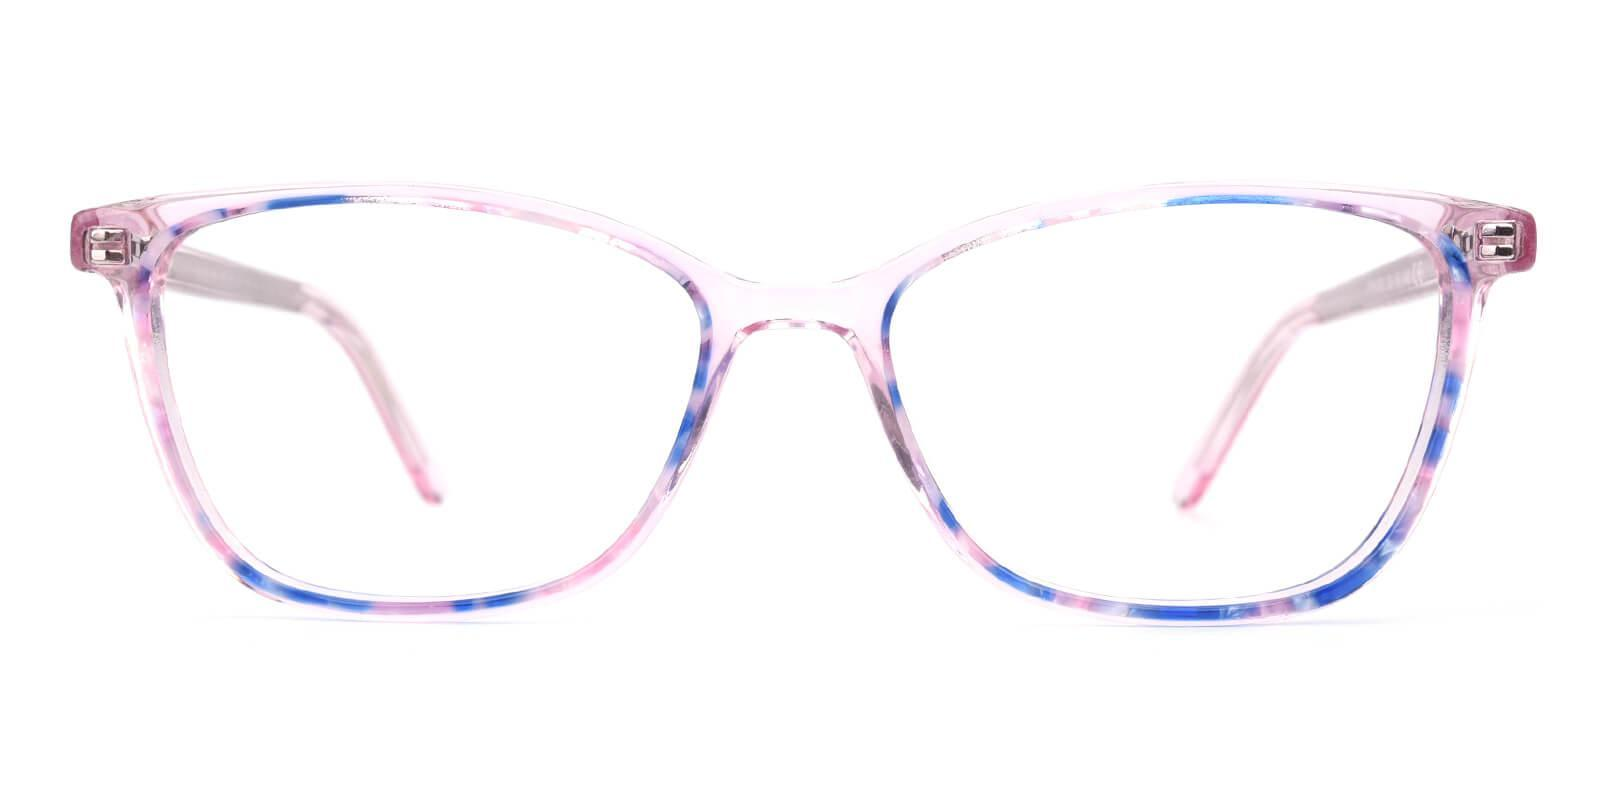 Sweden Pink Acetate Eyeglasses , UniversalBridgeFit Frames from ABBE Glasses